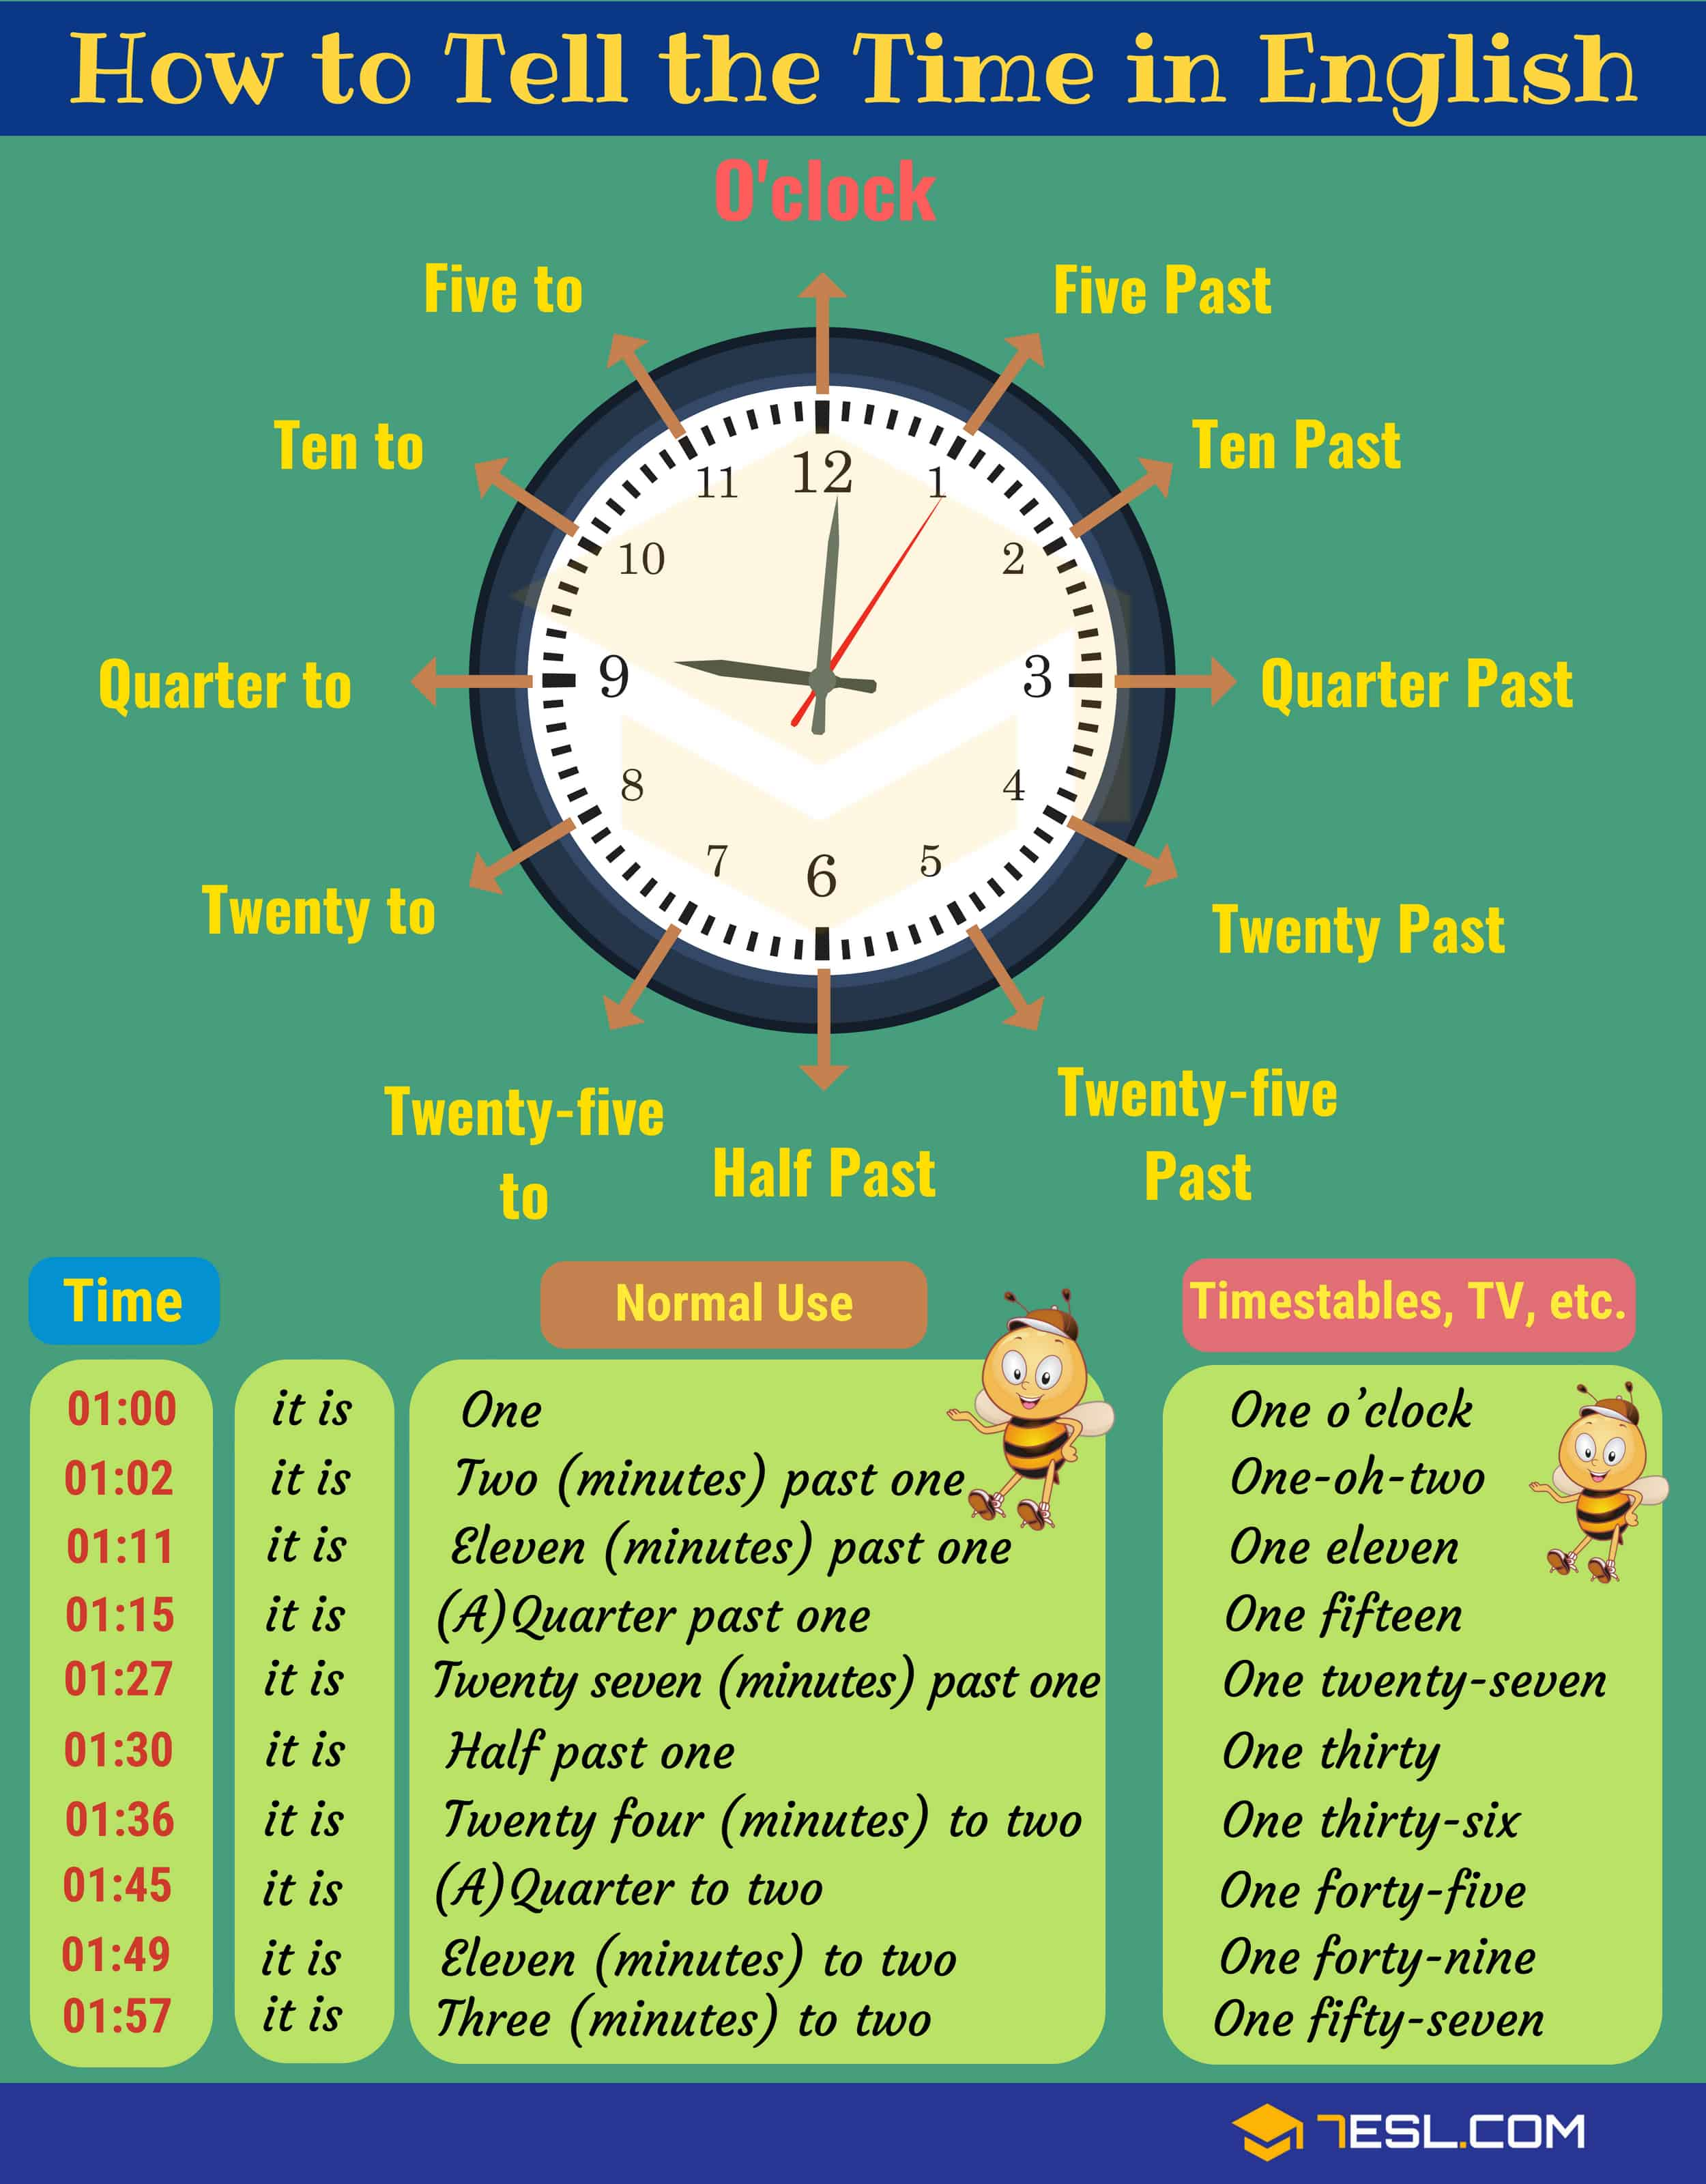 Learn How To Tell The Time Properly In English